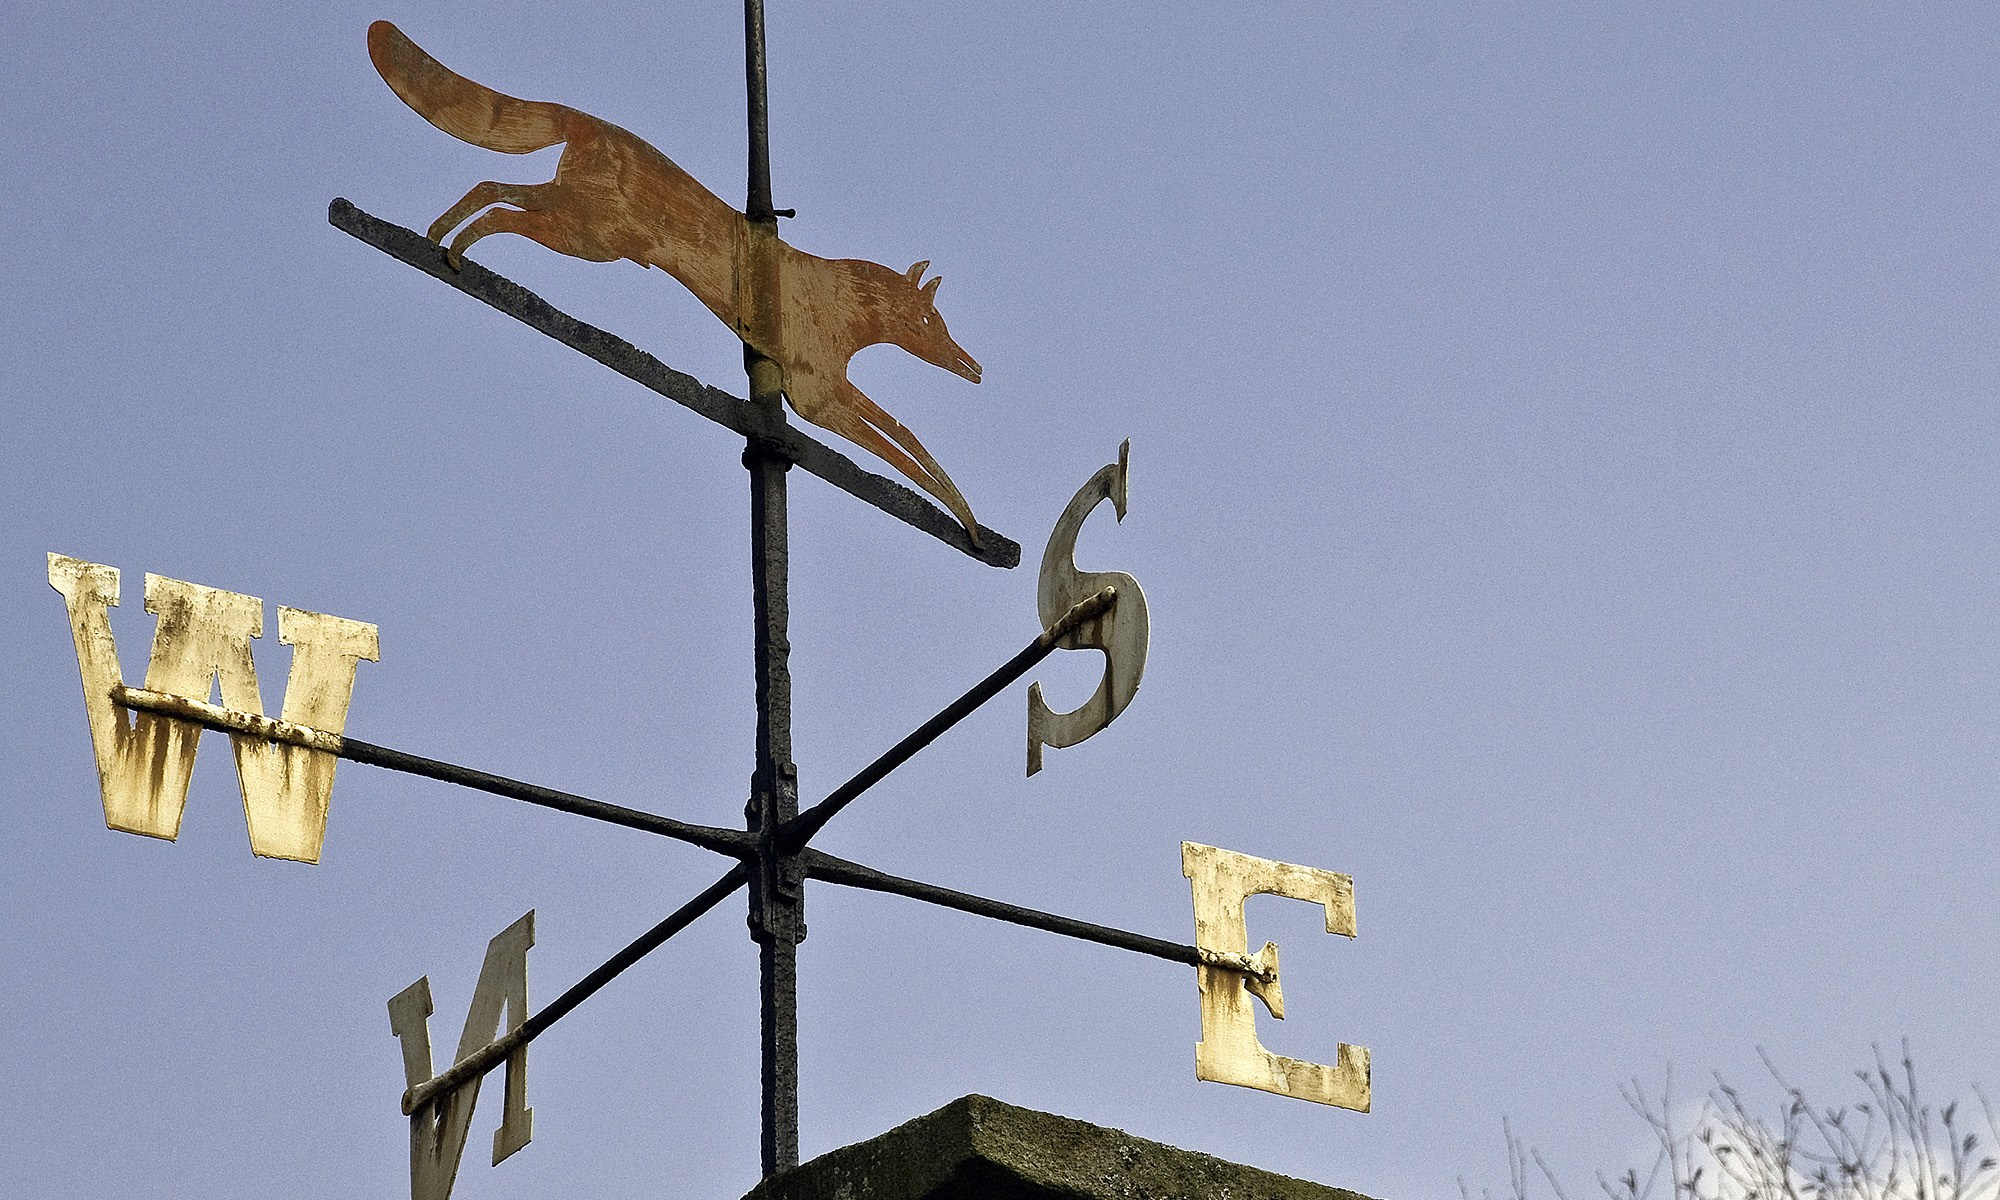 Red Fox on Weather Vane, County Durham